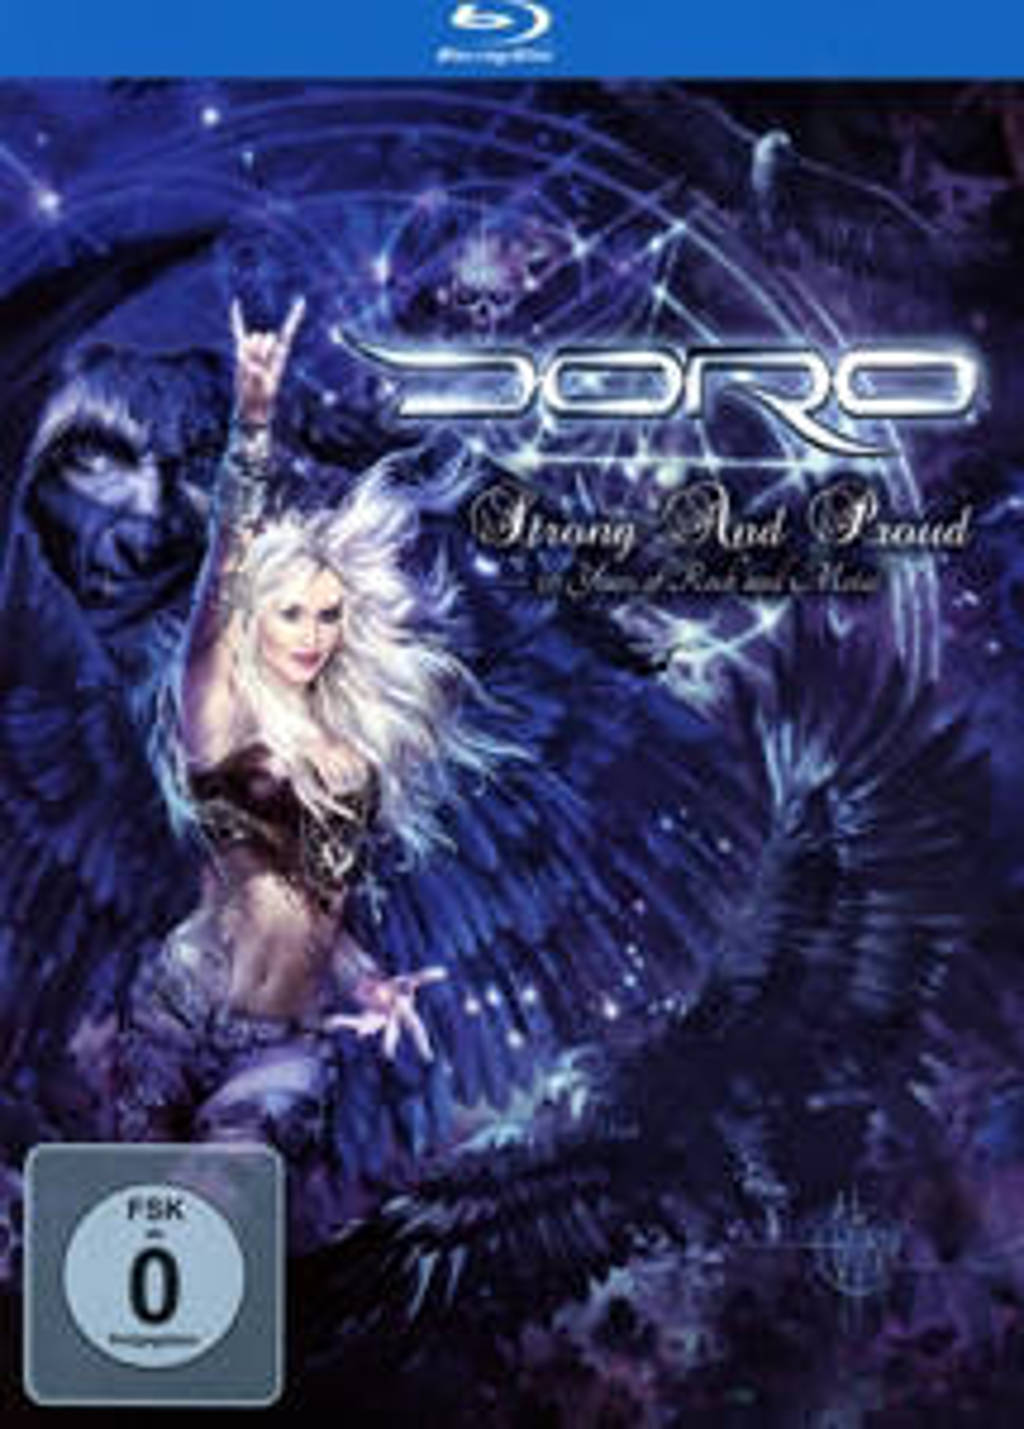 Doro - Strong And Proud (Blu-ray)